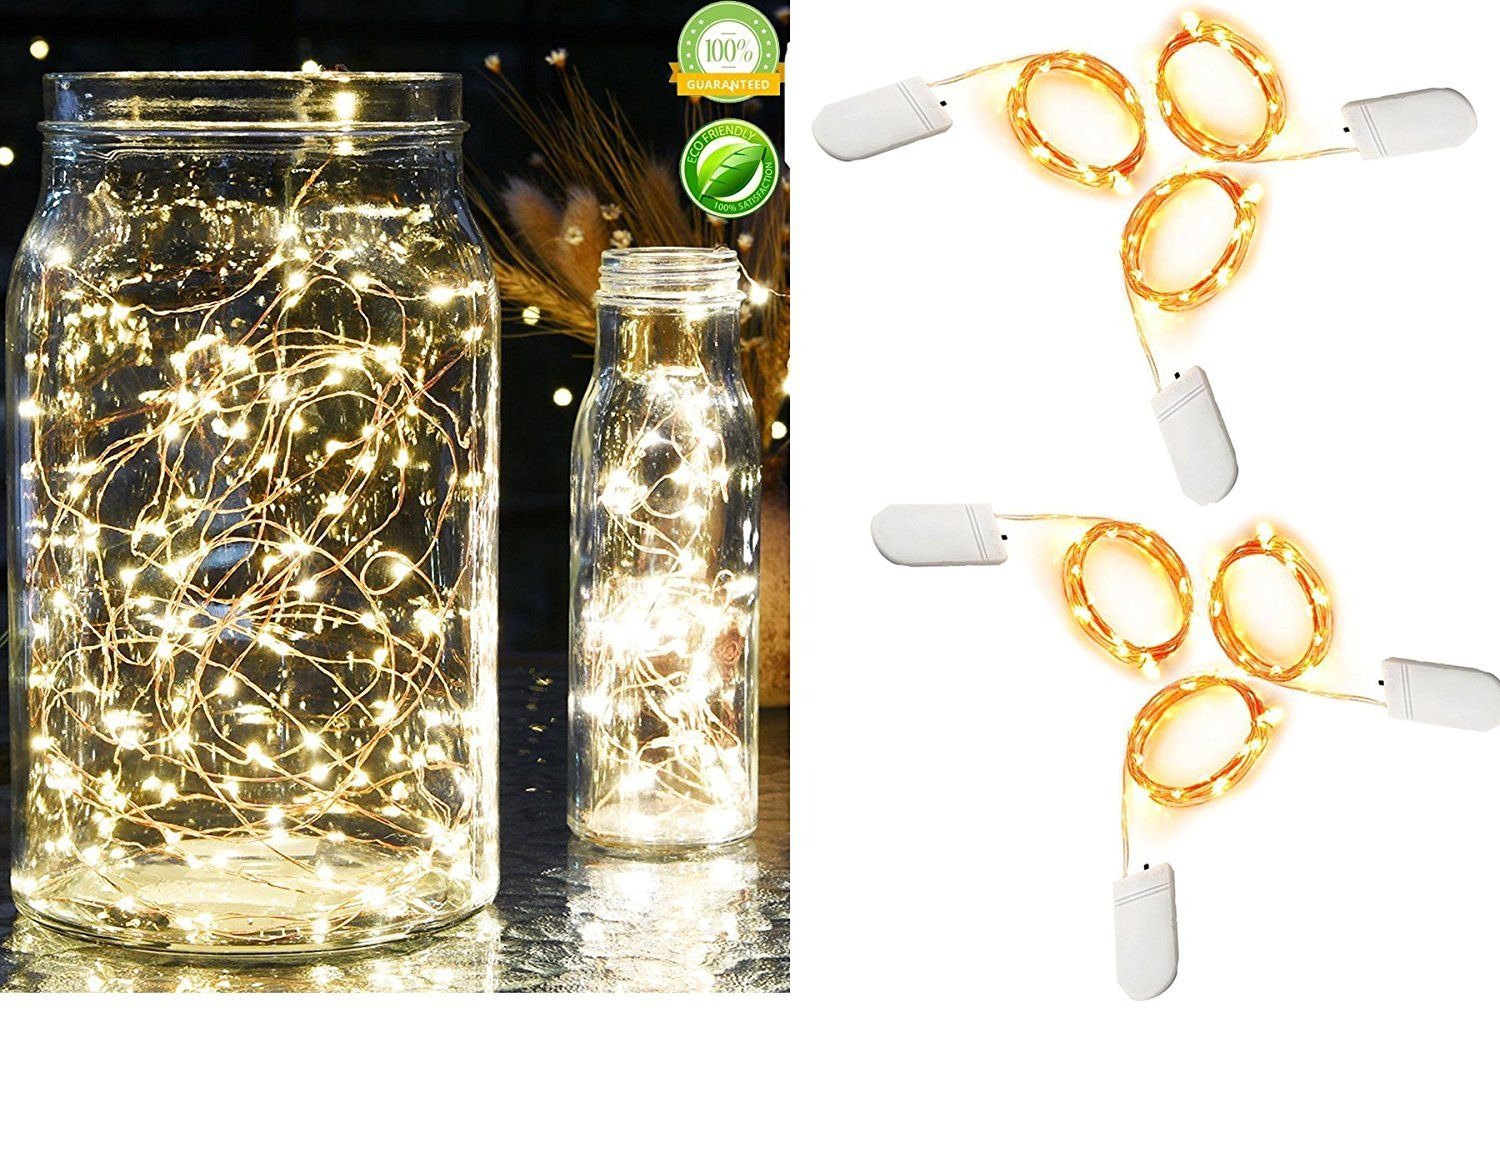 Amazon.com: Pack of 6 Sets Fairy Lights Battery Operated Firefly ...